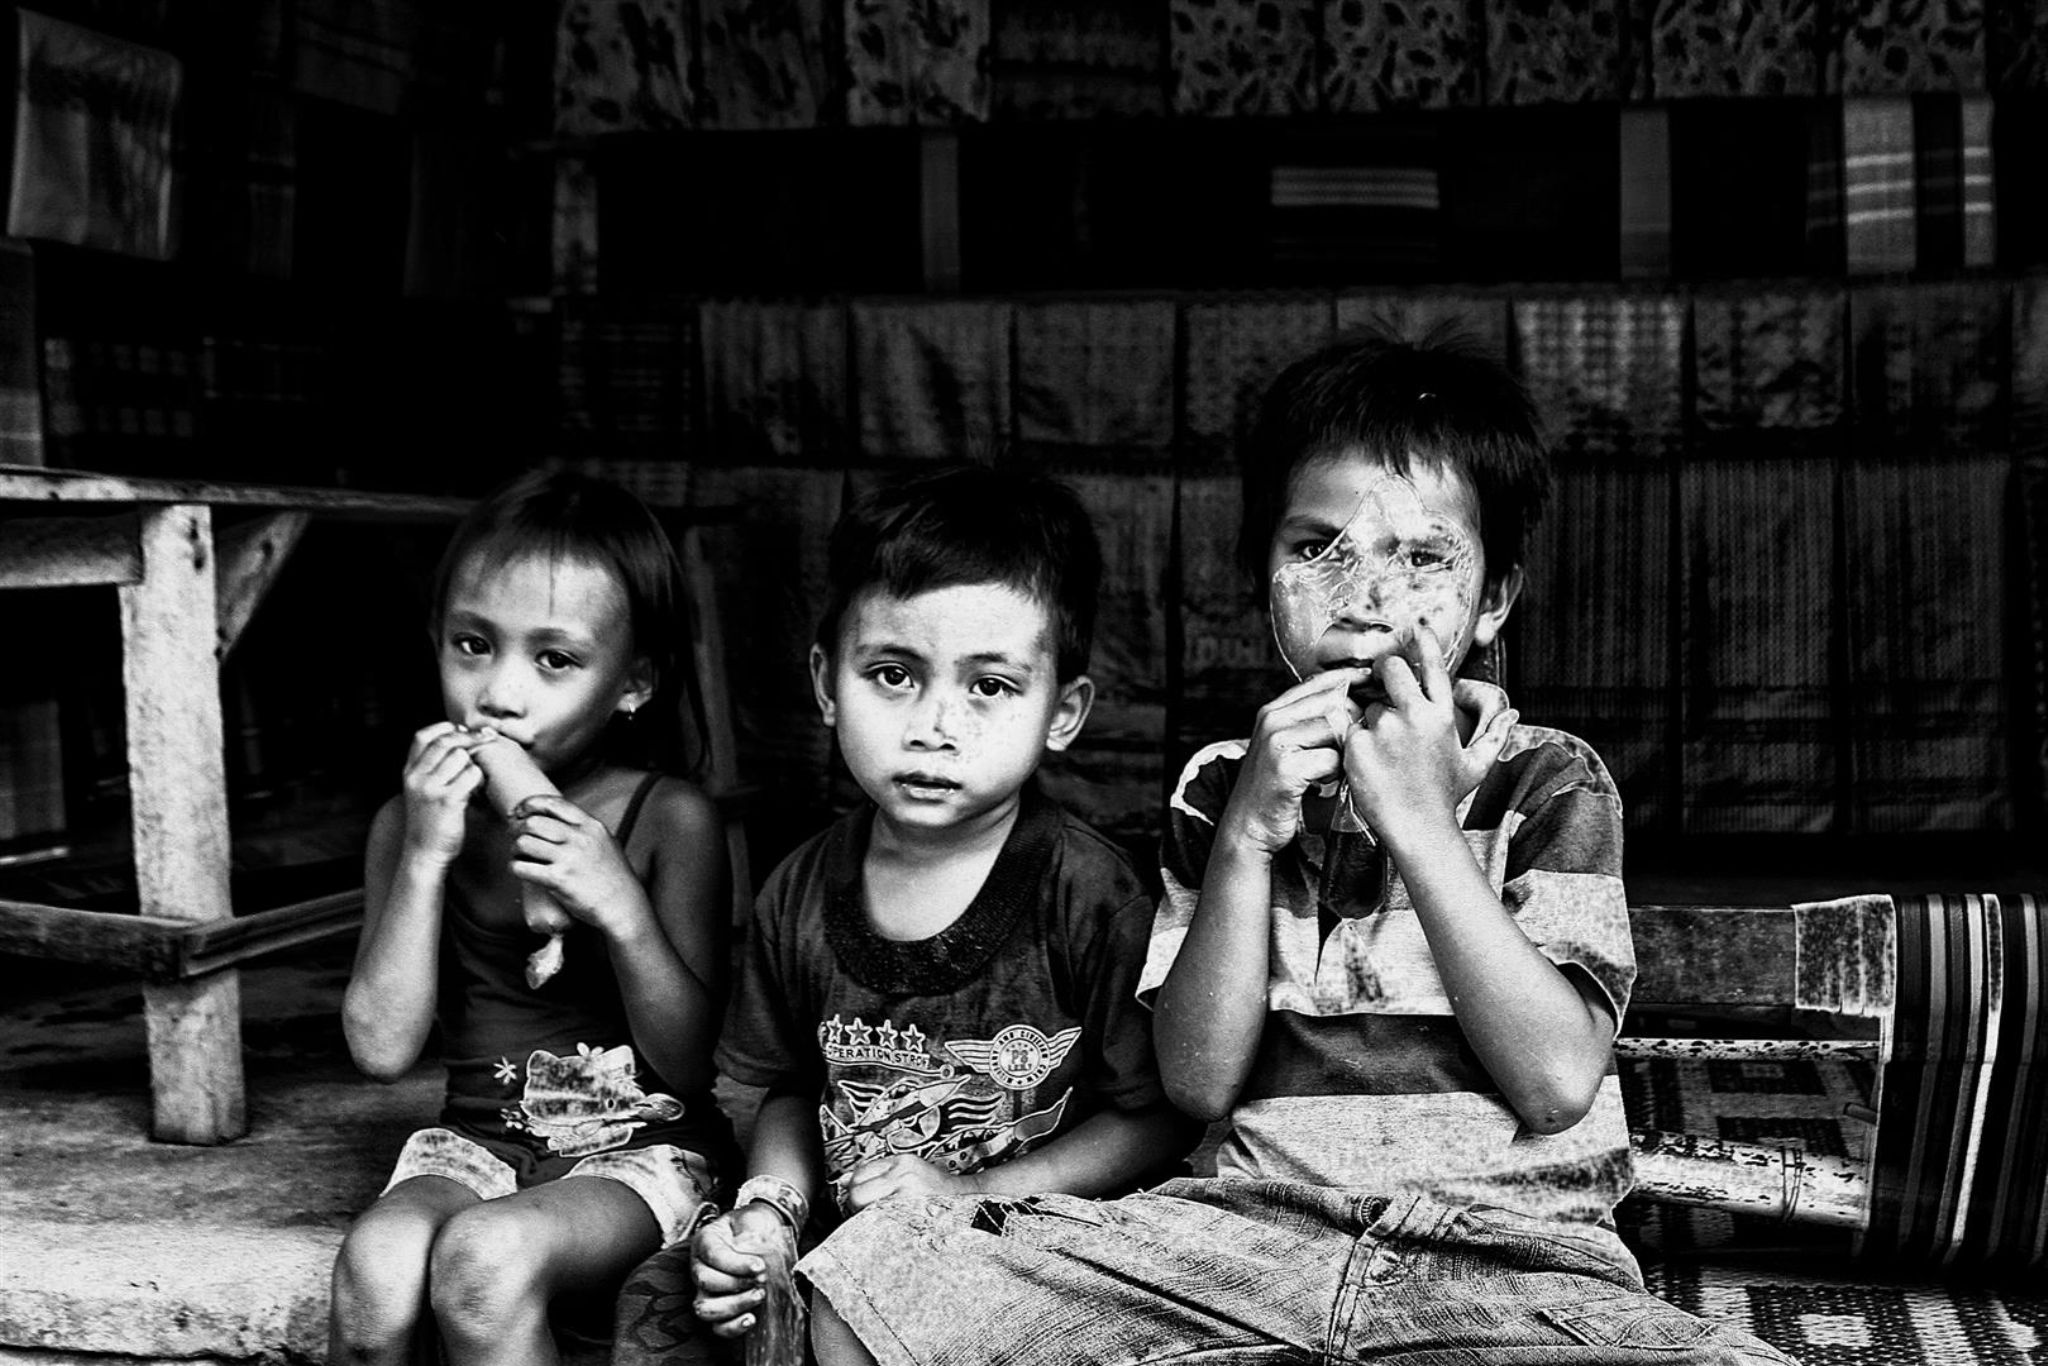 LOMBOK_IndonesiaOnTheStreet #51 by Jo Simson